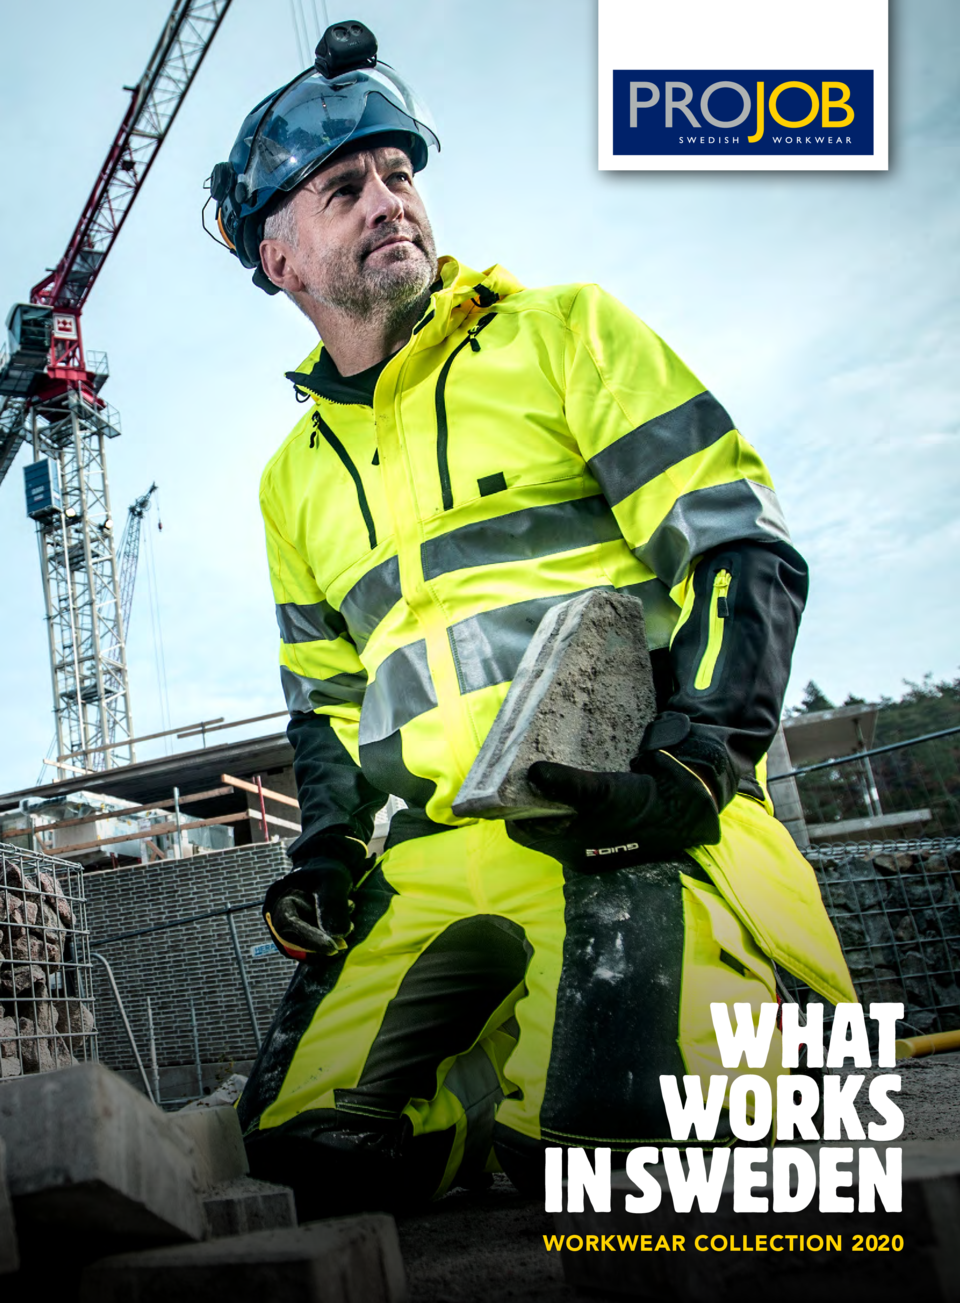 WHAT WORKS IN SWEDEN WORKWEAR COLLECTION 2020